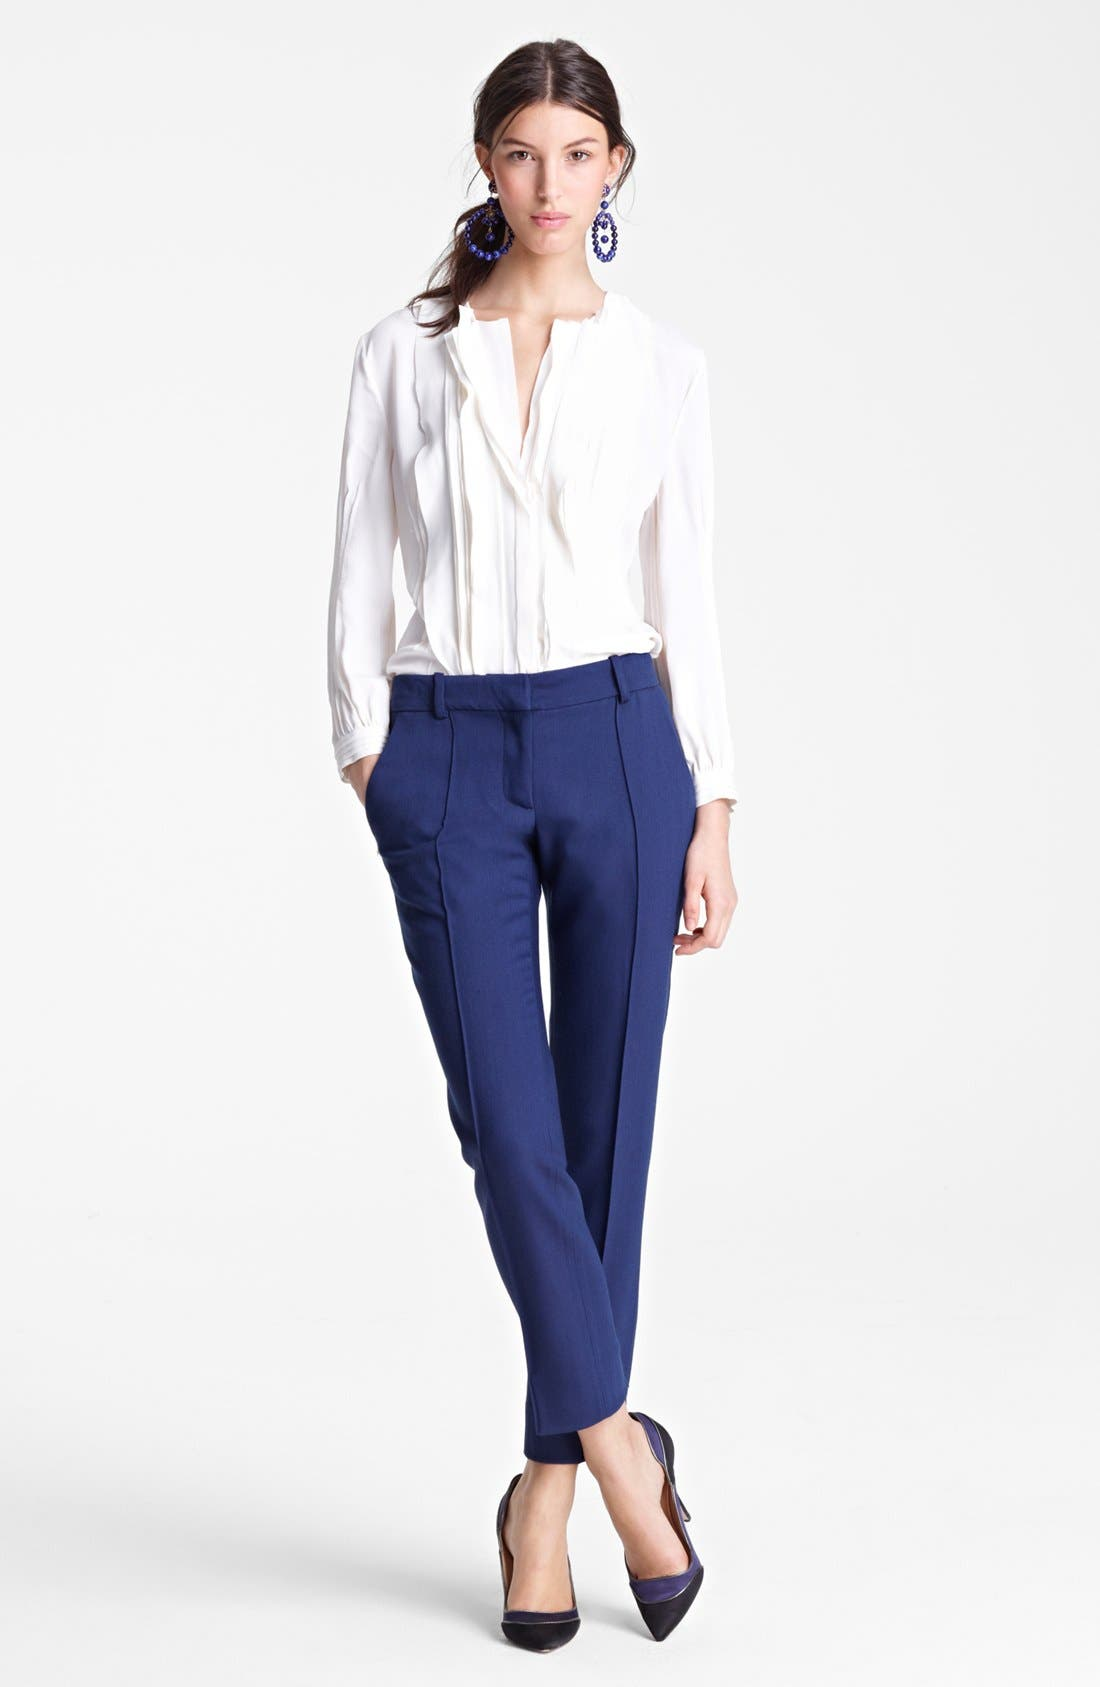 Alternate Image 1 Selected - Oscar de la Renta Blouse & Pants